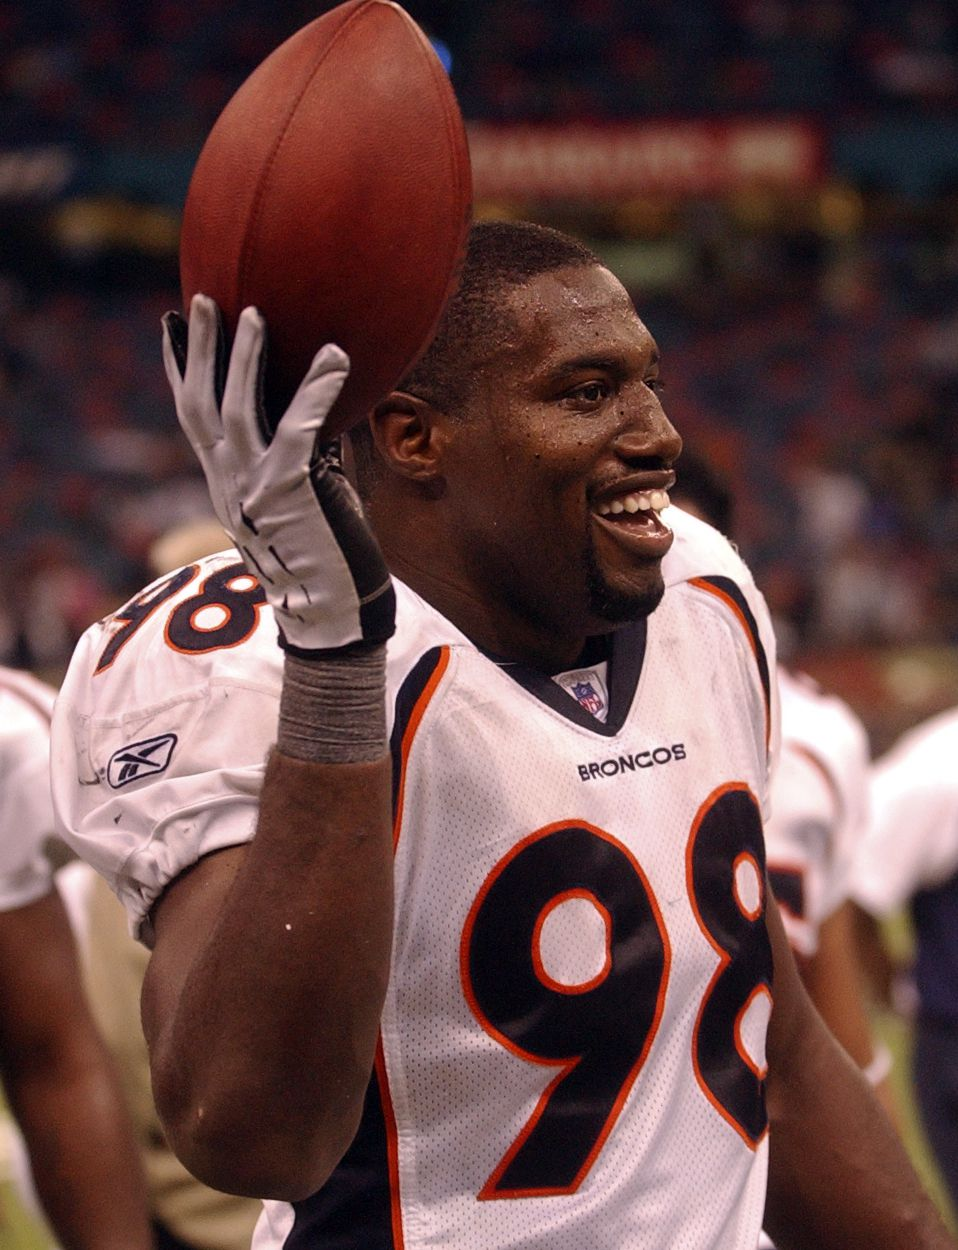 NEW ORLEANS,LA--NOVEMBER 21TH 2004--Reggie Hayward keeps the football in celebration after making an interception against New Orleans Saints at the Louisiana Superdome late in the fourth quarter of play Sunday afternoon. THE DENVER POST/ ANDY CROSS